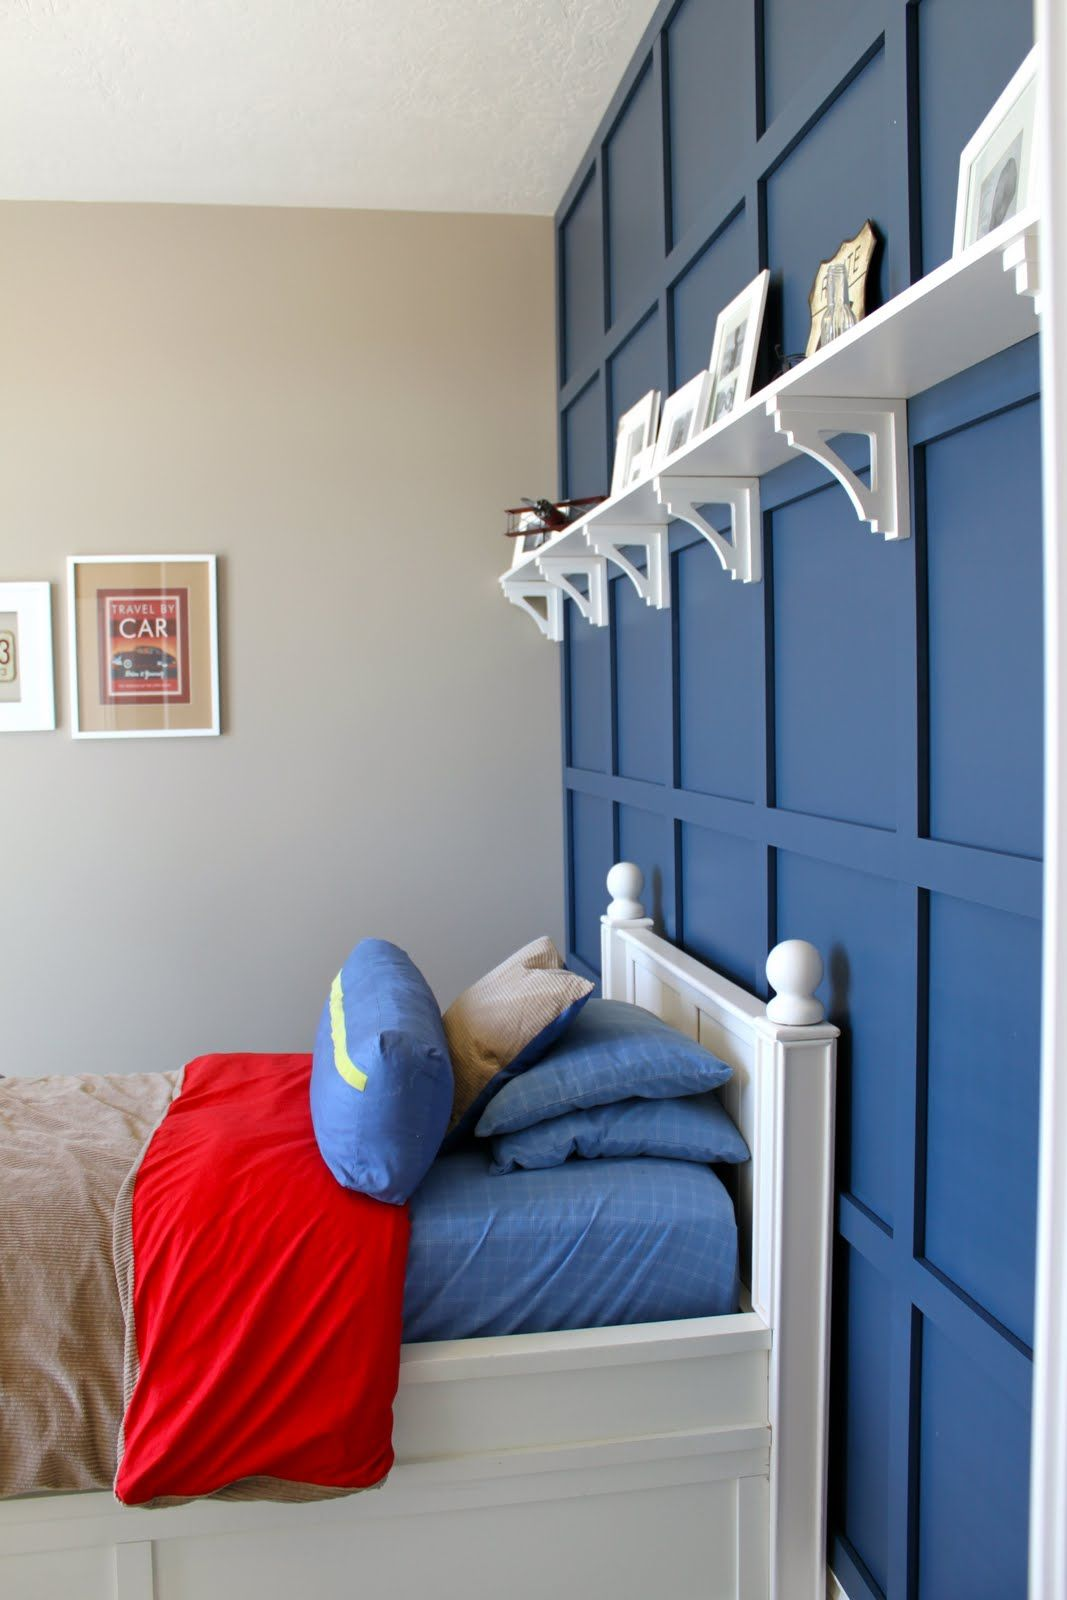 Navy accent wall bm newburyport blue gavyn wants an all blue room maybe we could compromise